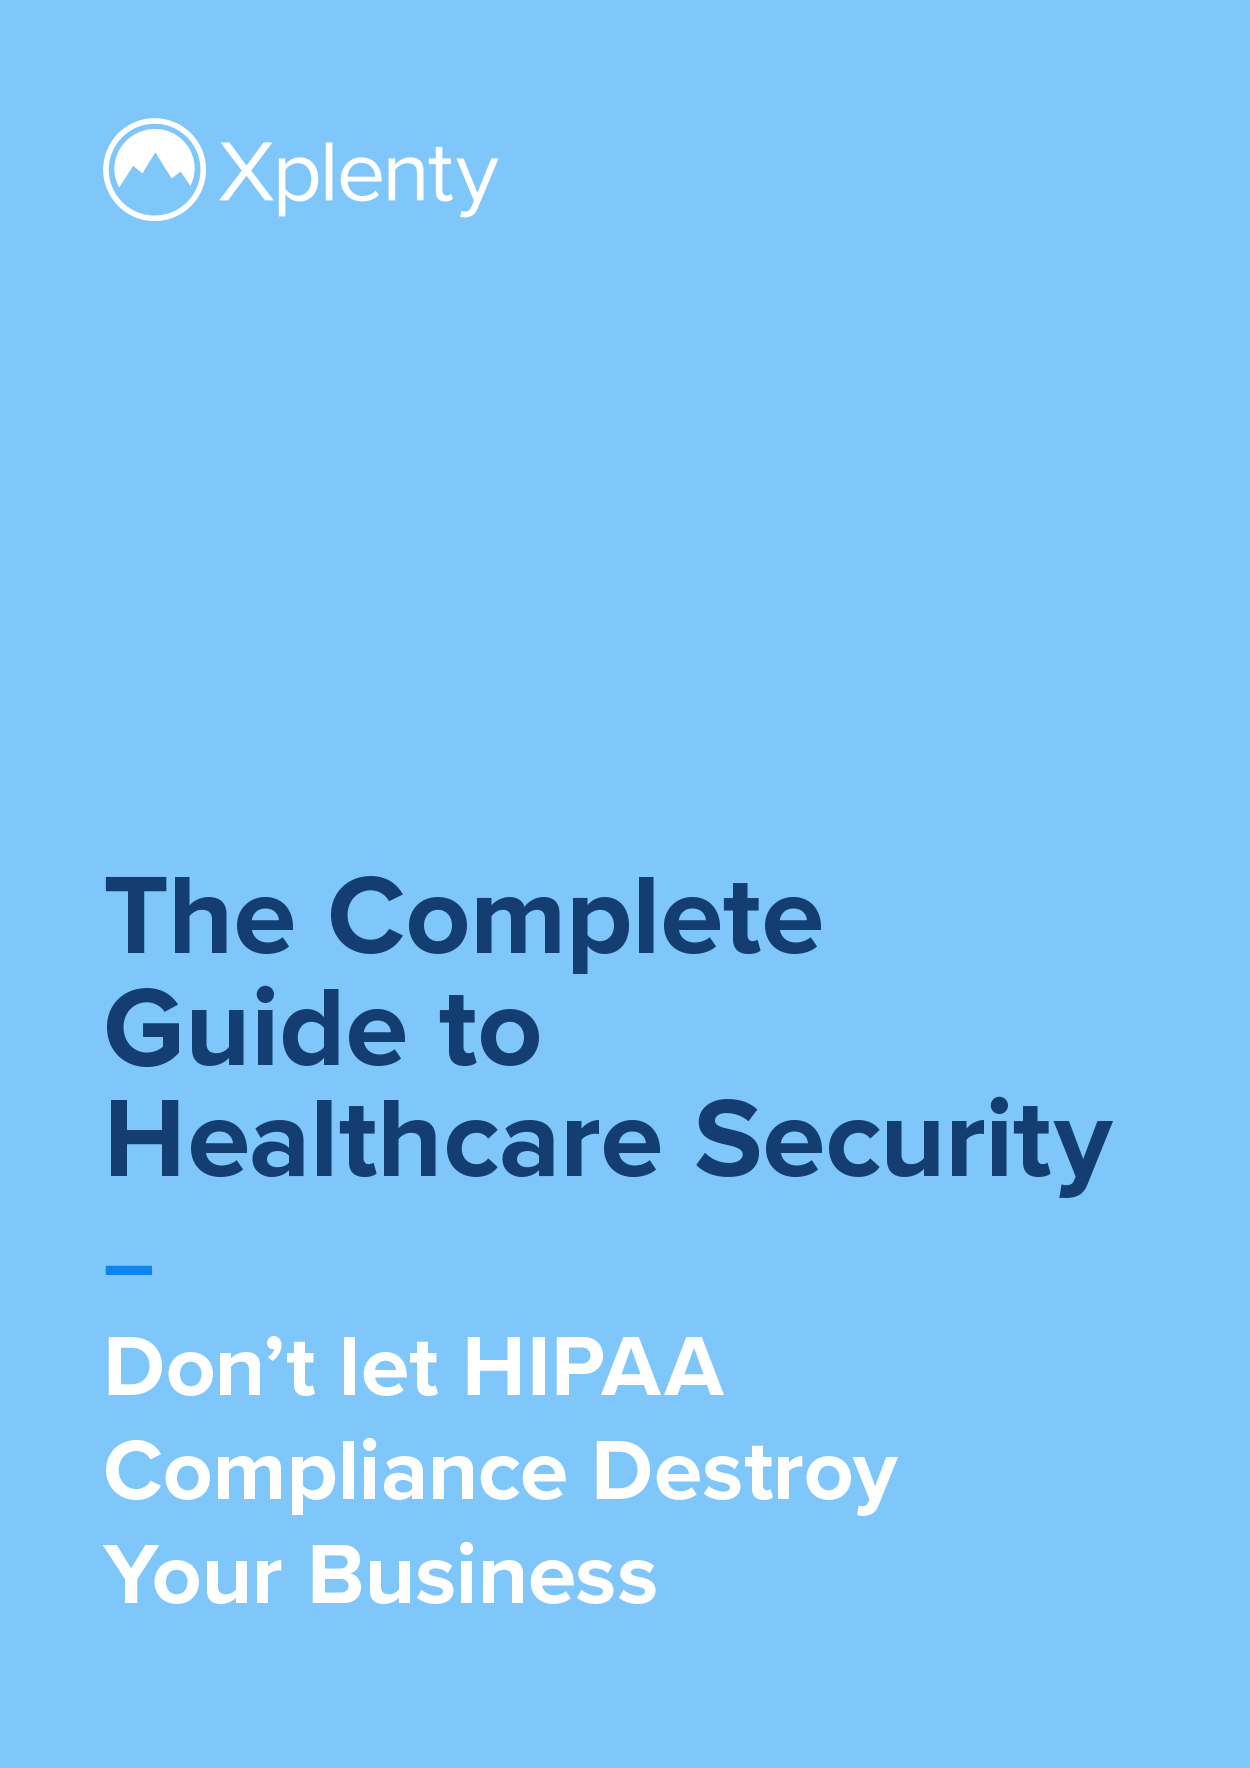 The Complete Guide to Healthcare Security